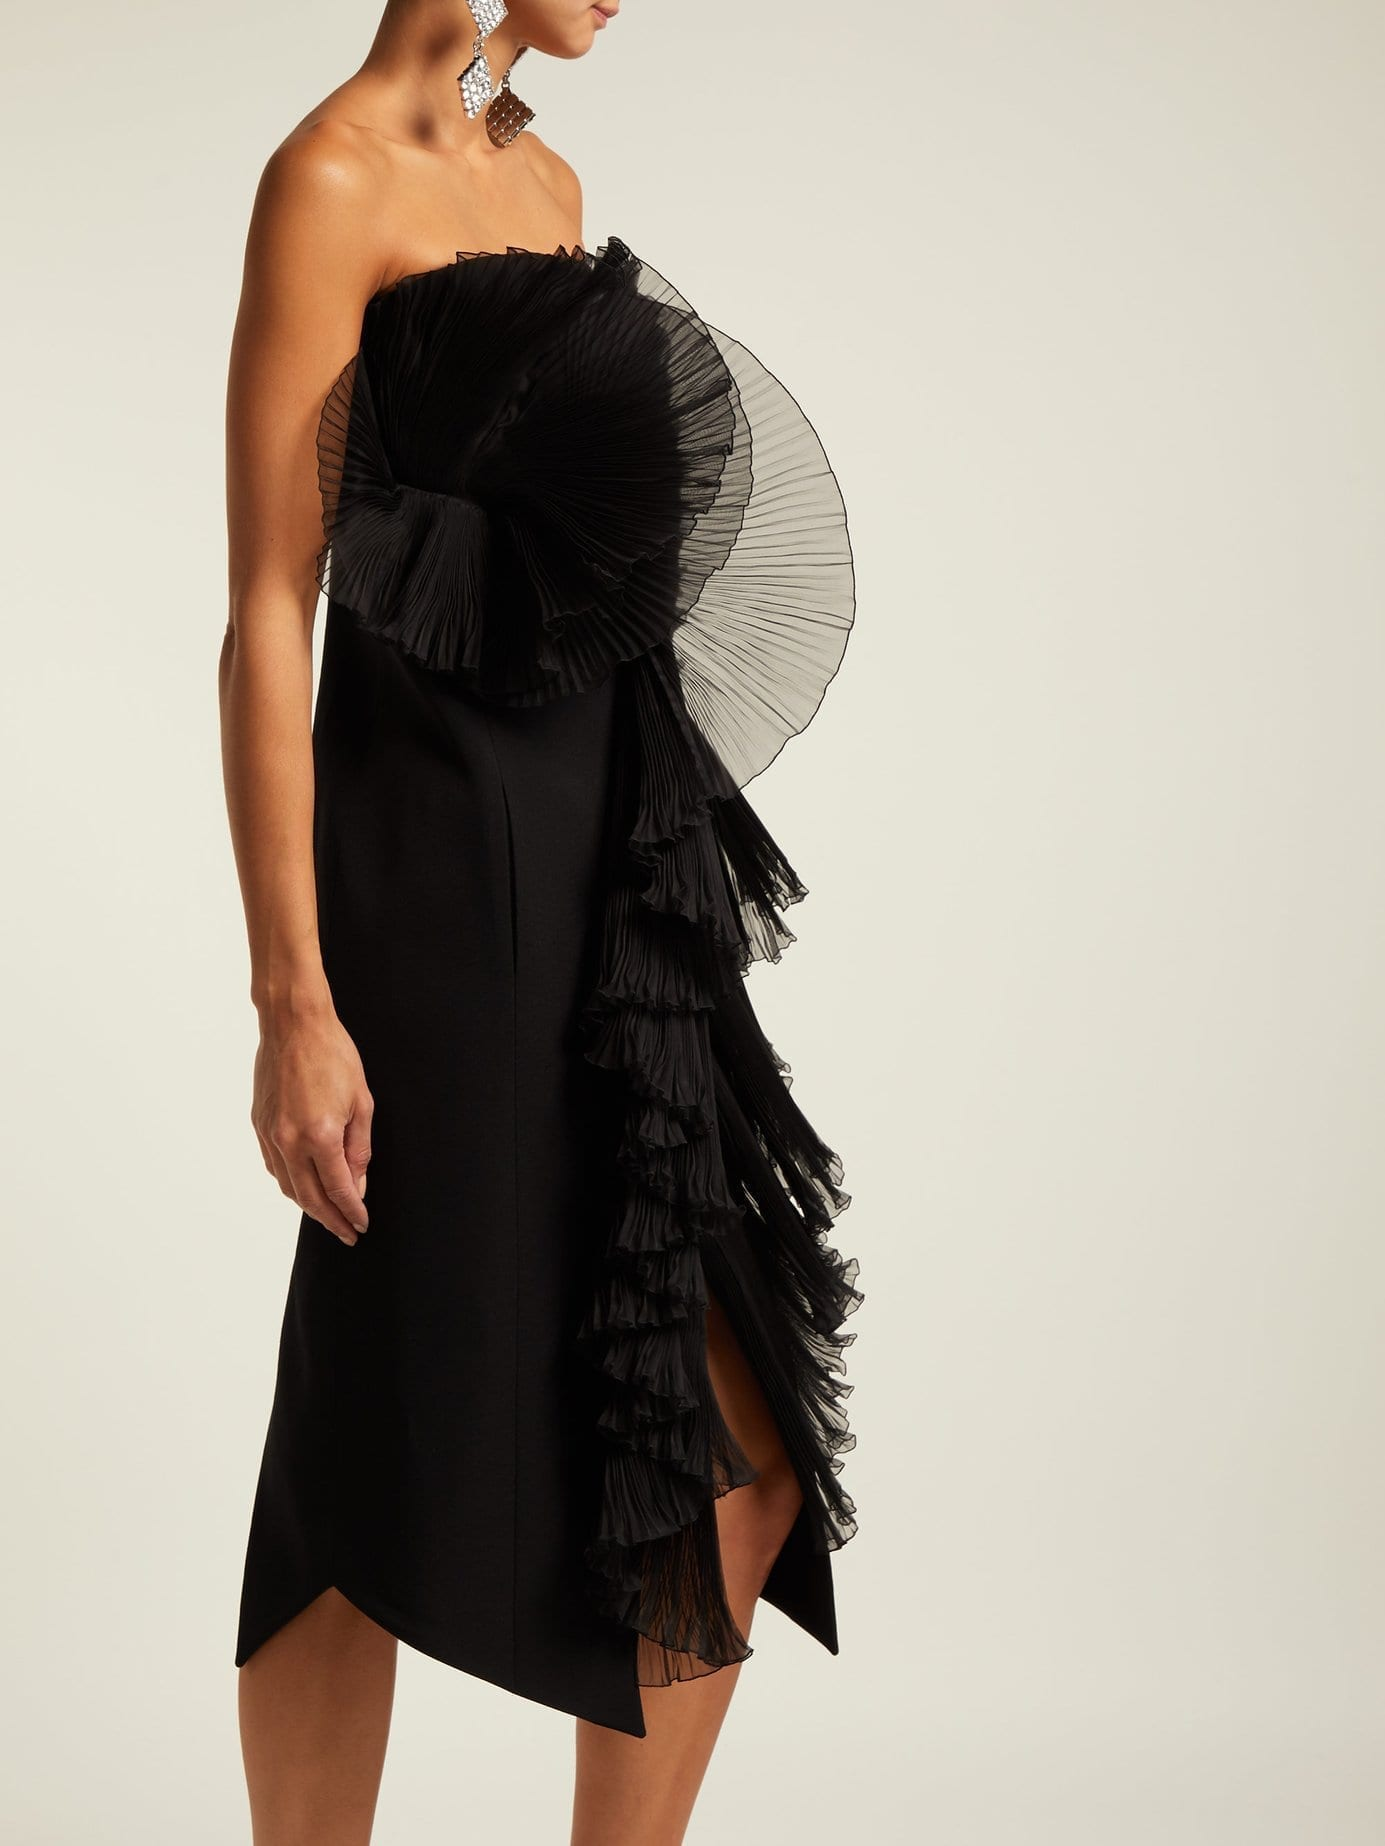 GIVENCHY Strapless Ruffle Black Dress - We Select Dresses